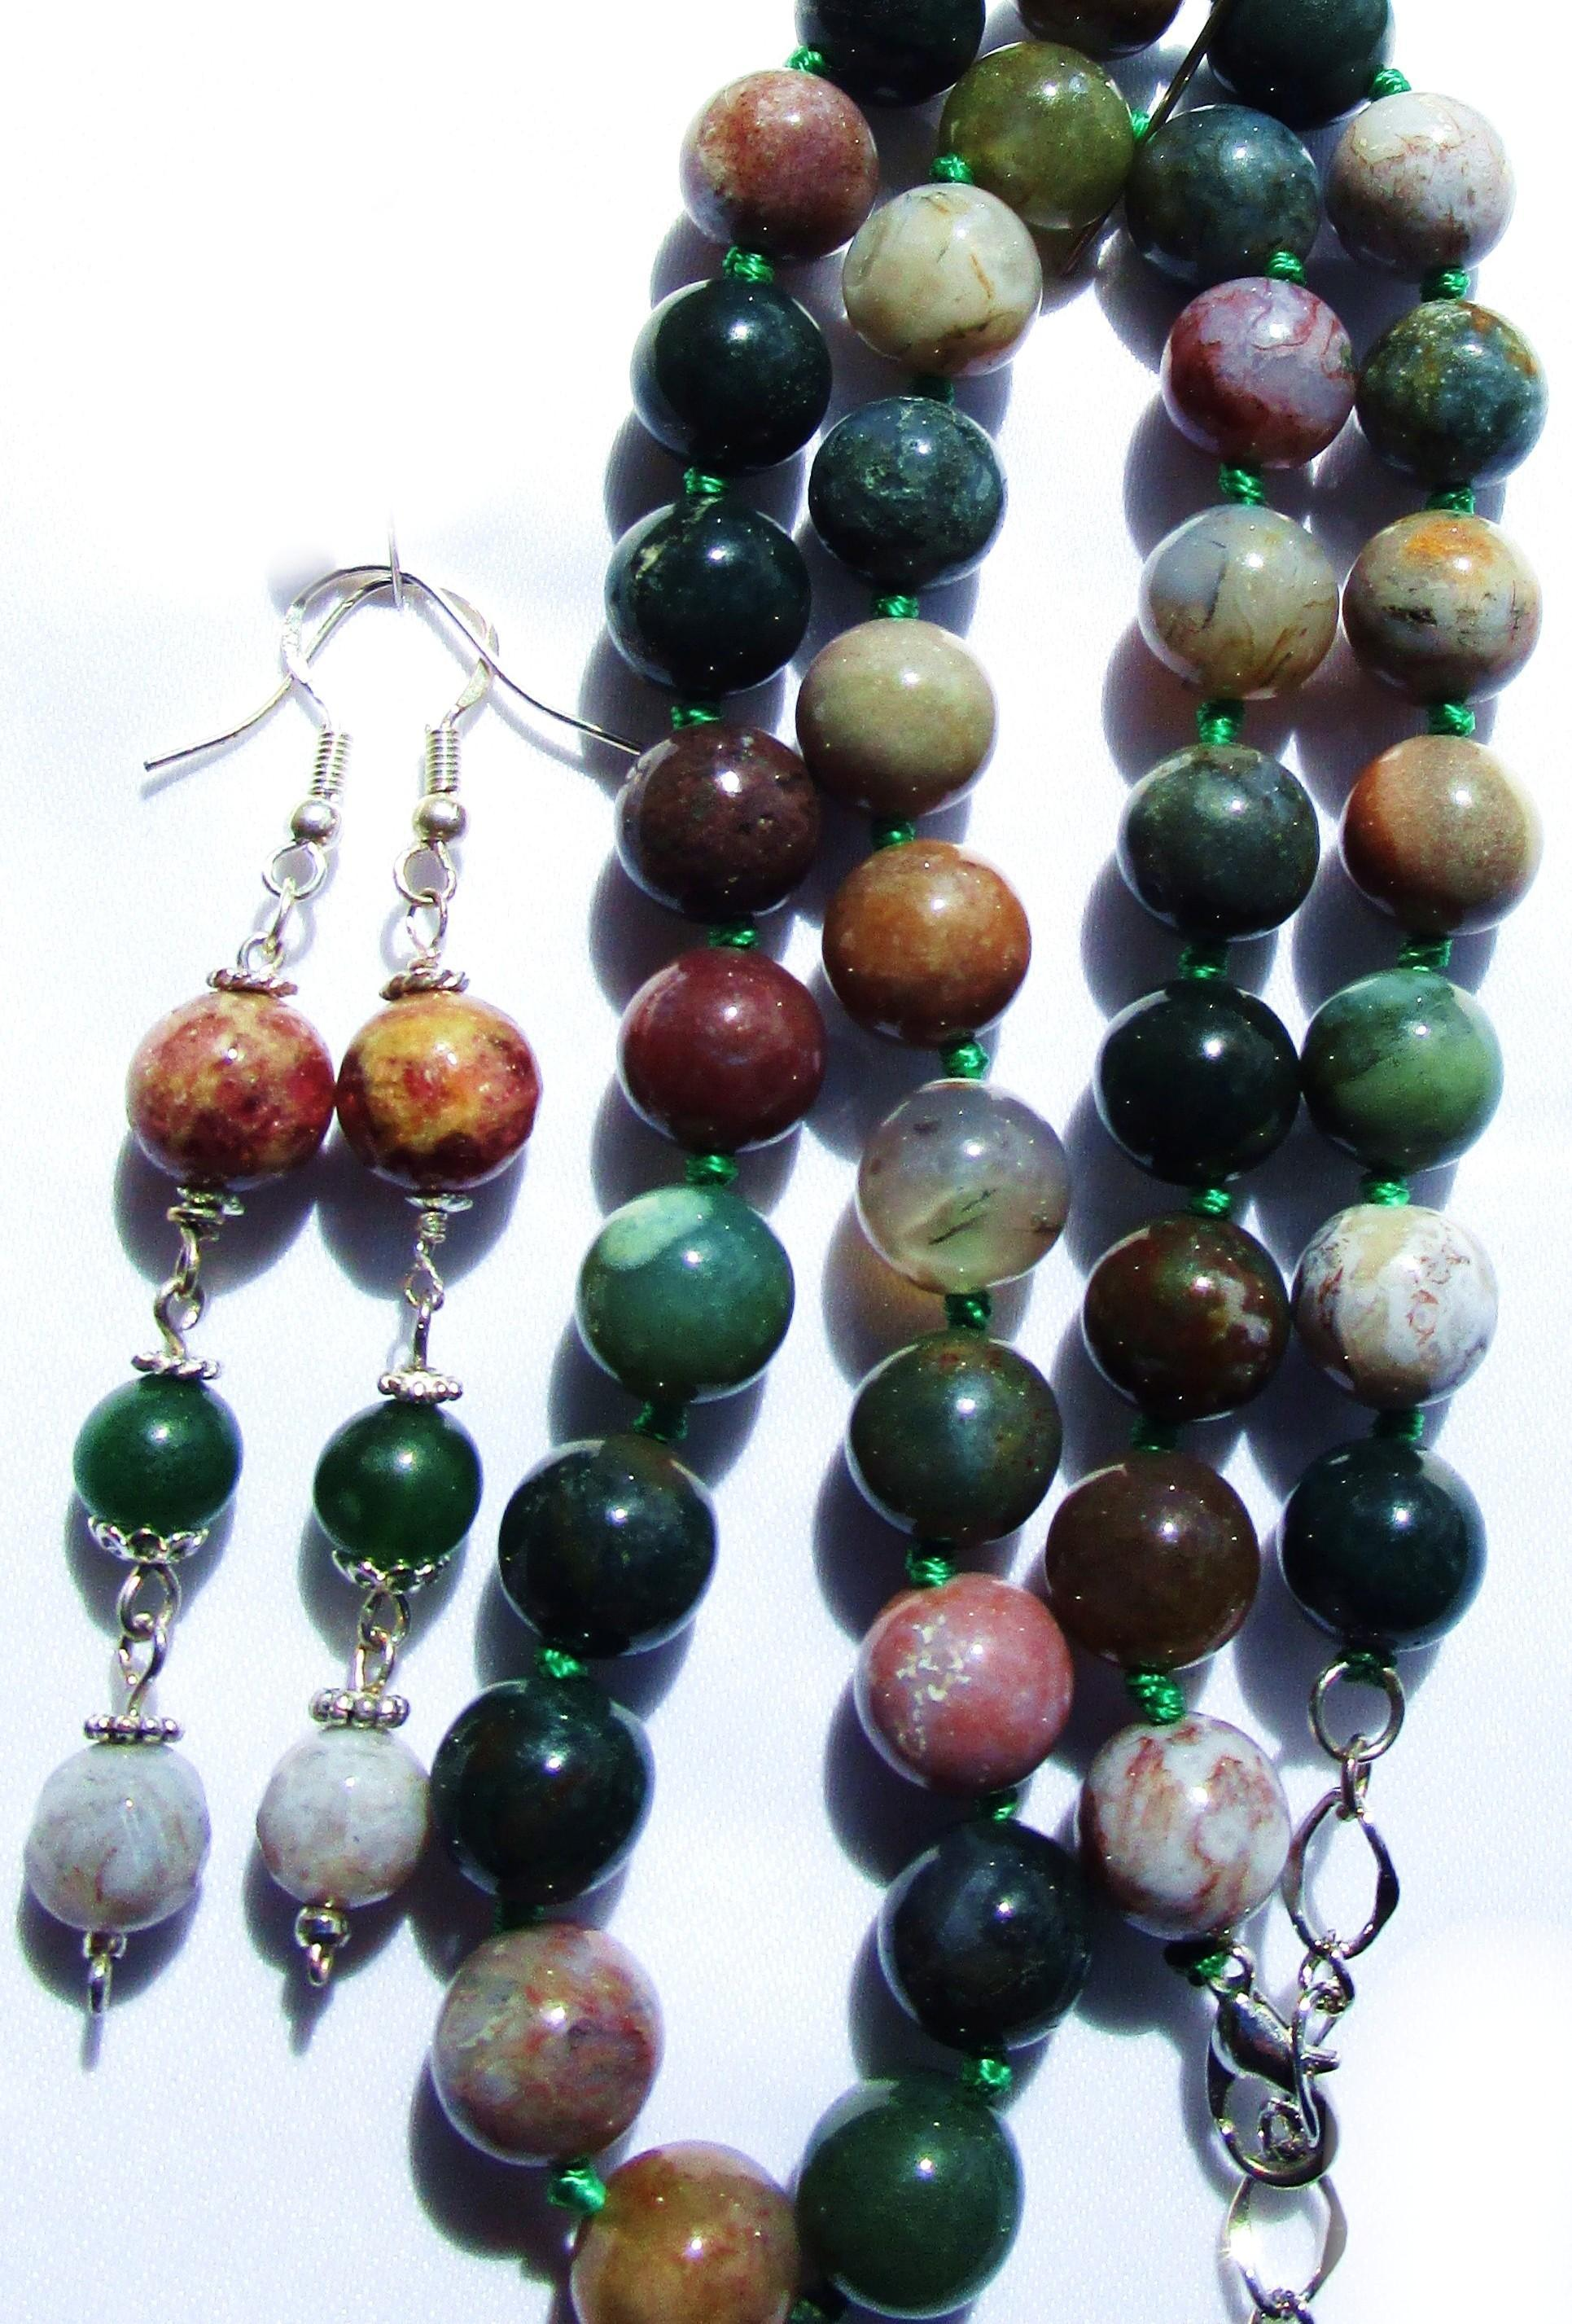 10 mm Fancy Jasper/Indian Agate Knotted Bead Necklace/Earrings